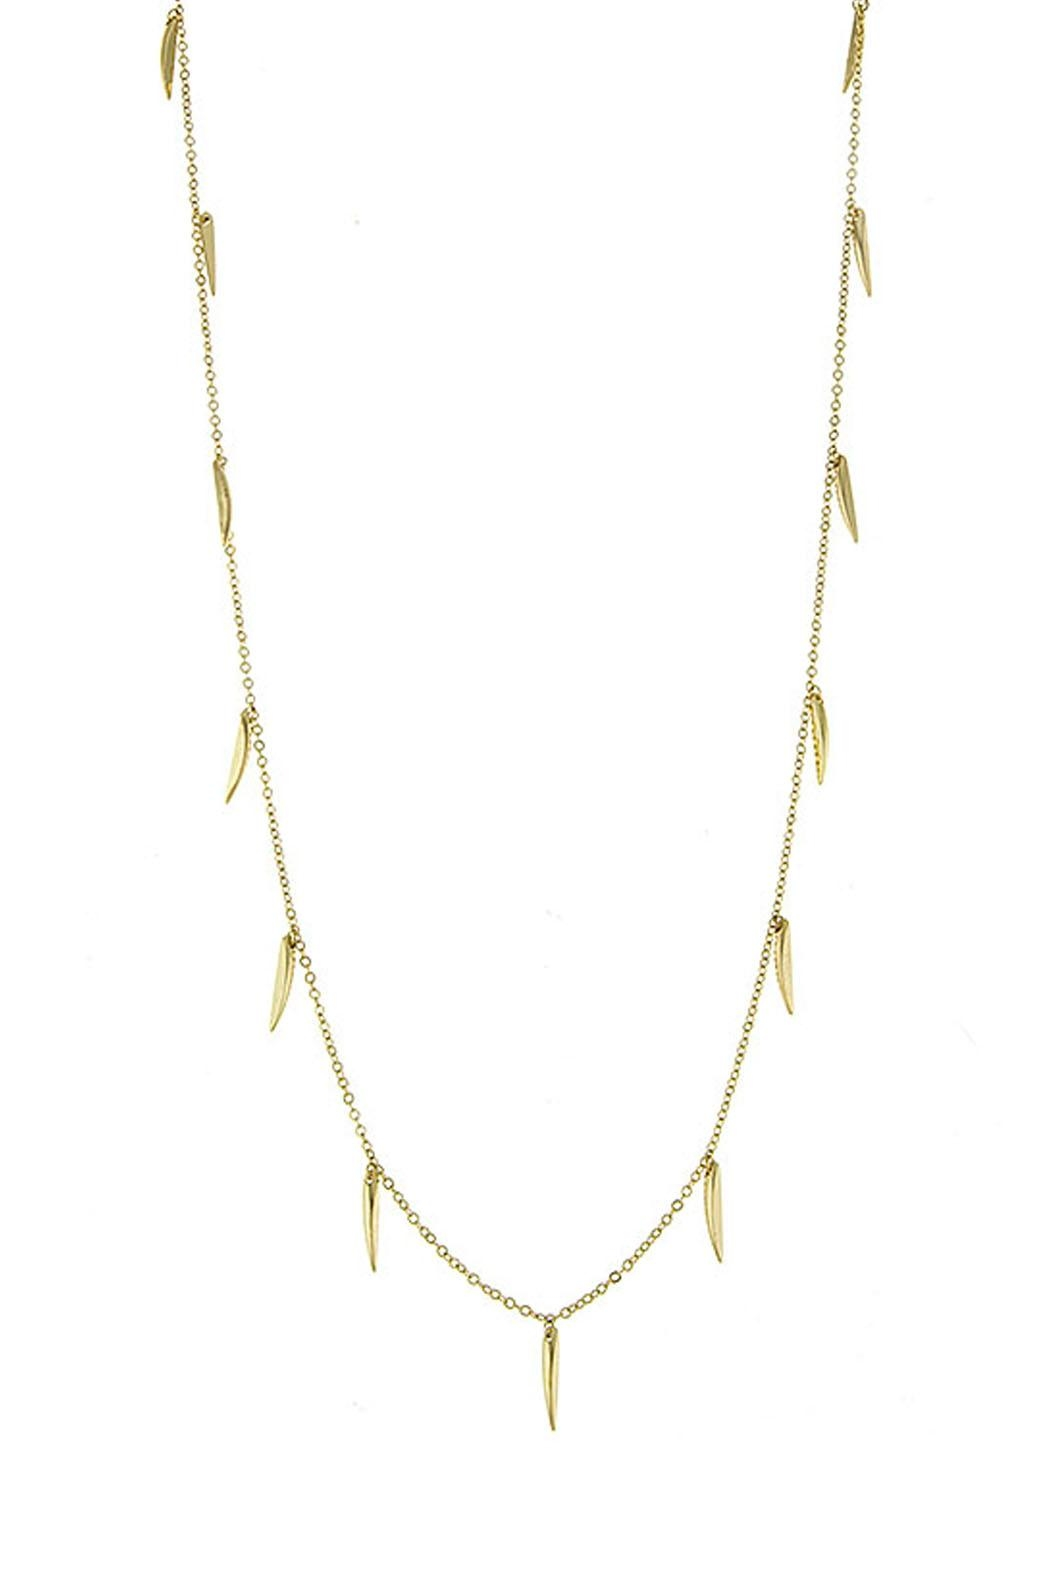 Wild Lilies Jewelry  Gold Spike Necklace - Main Image